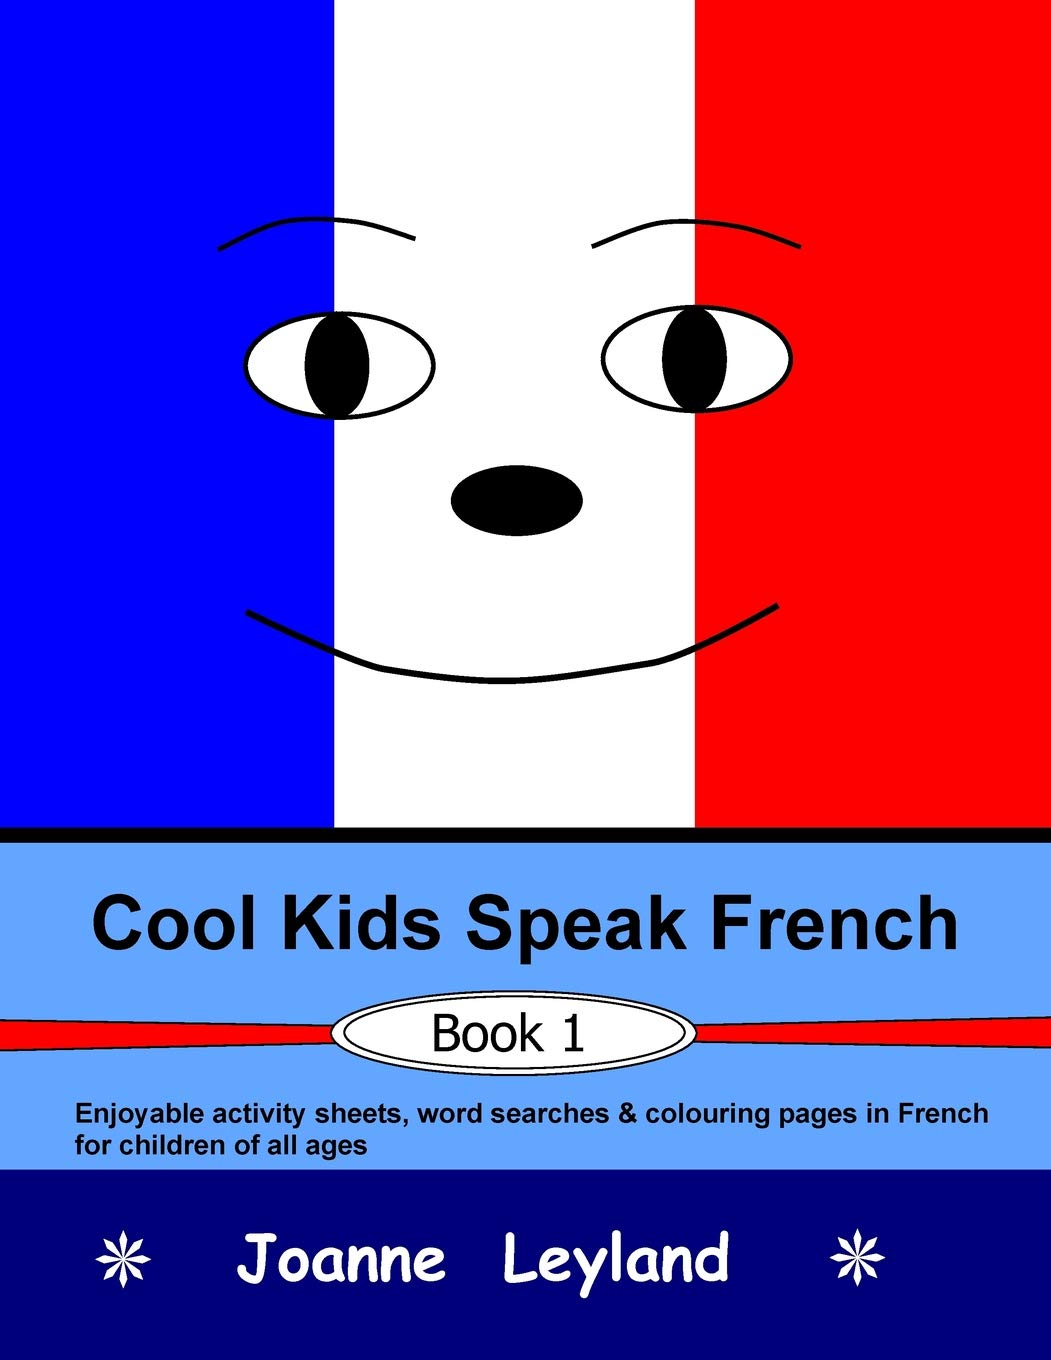 Cool kids speak french book 1 enjoyable activity sheets word searches colouring pages in french for children of all ages french paperback may 19